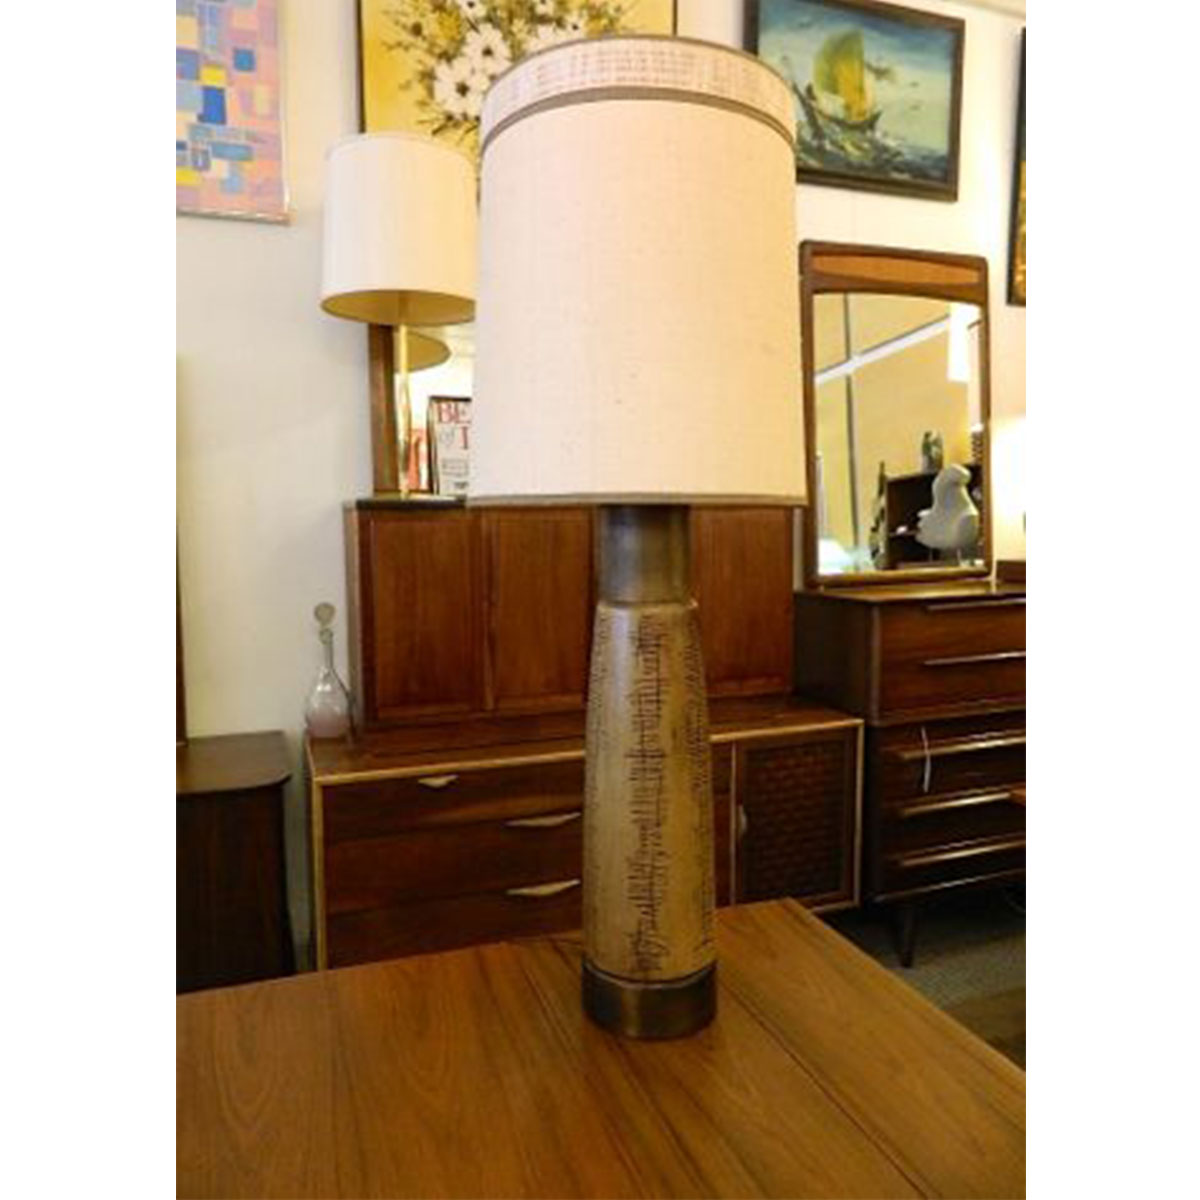 Martz Style MCM Tall Textured Lamp